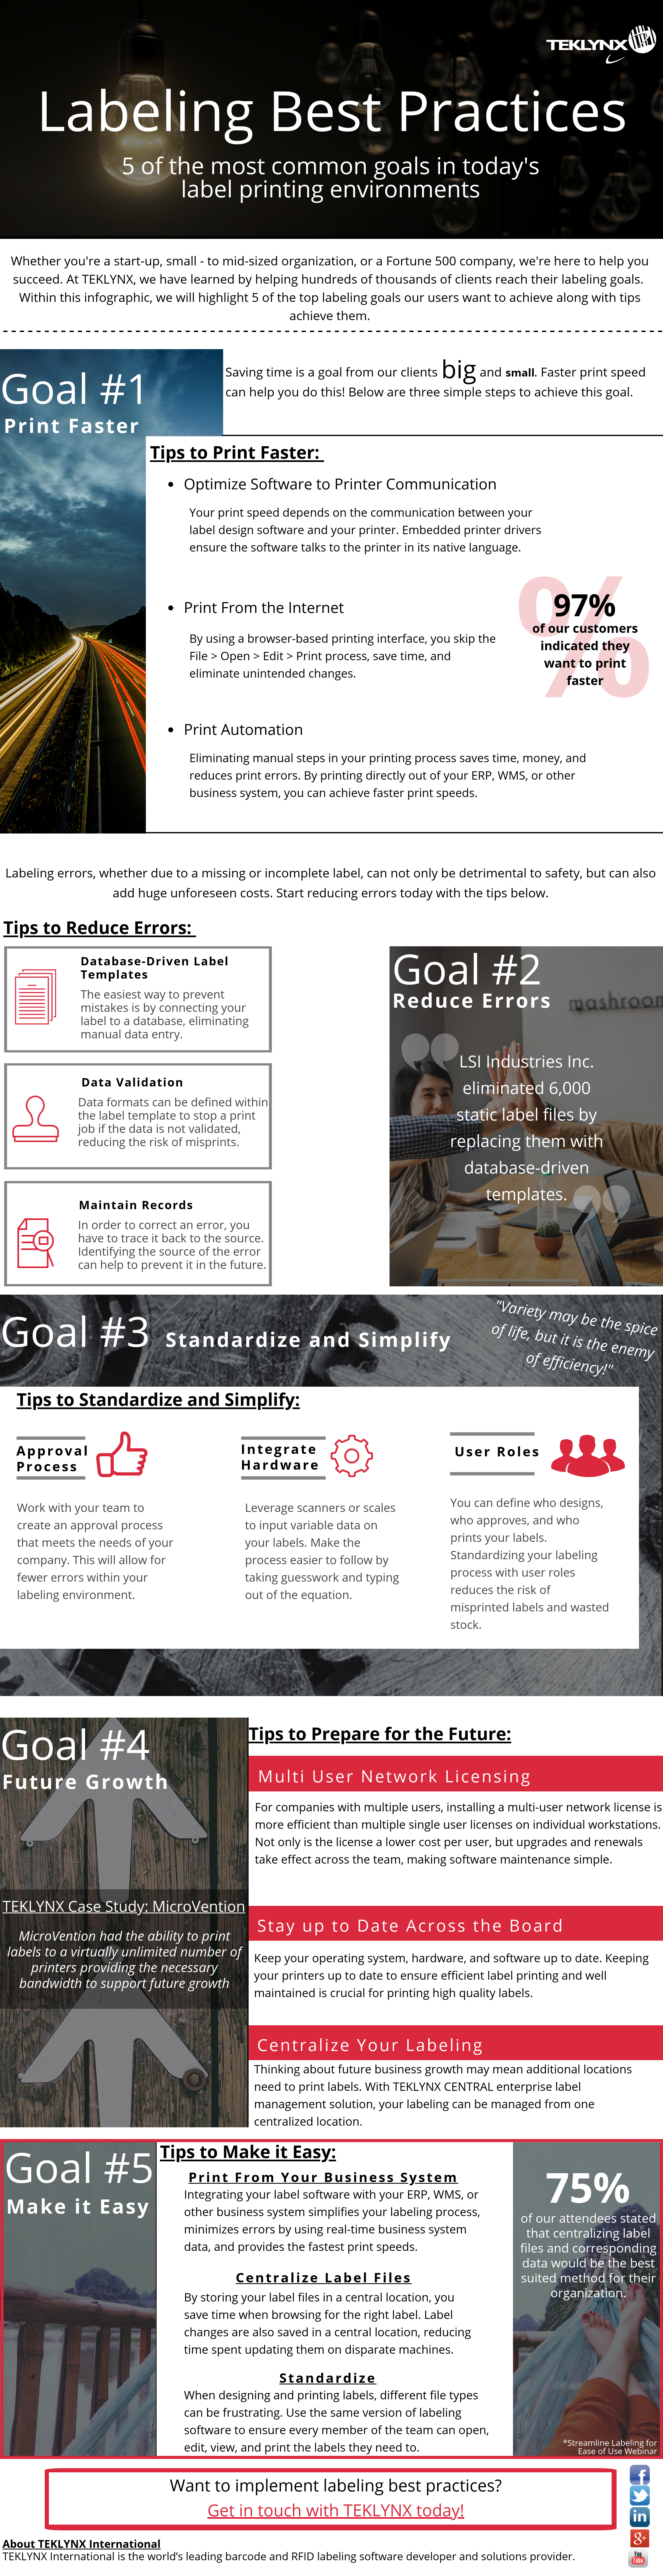 Free Infographic: Labeling Best Practices